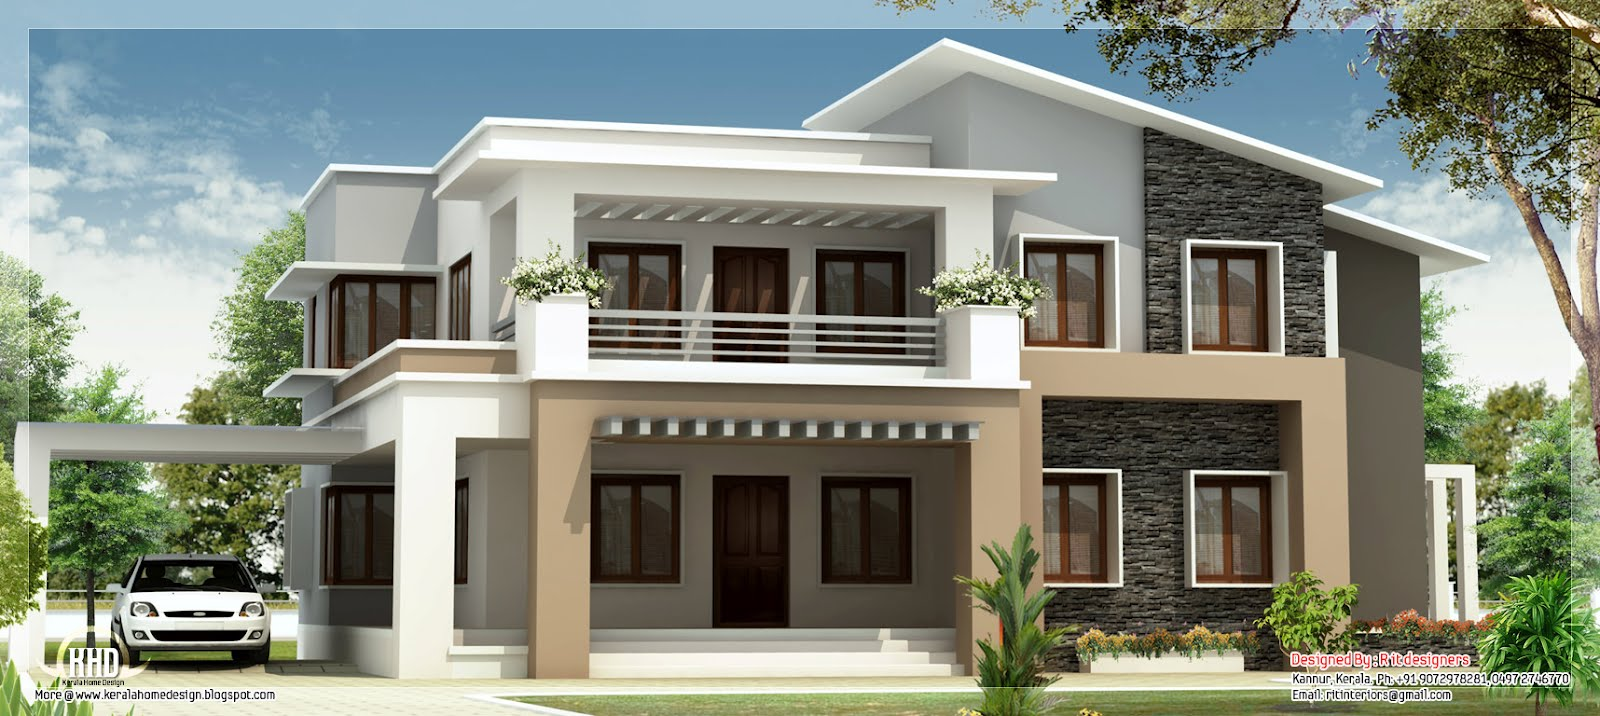 Amazing Double Floor House Design 1600 x 716 · 210 kB · jpeg